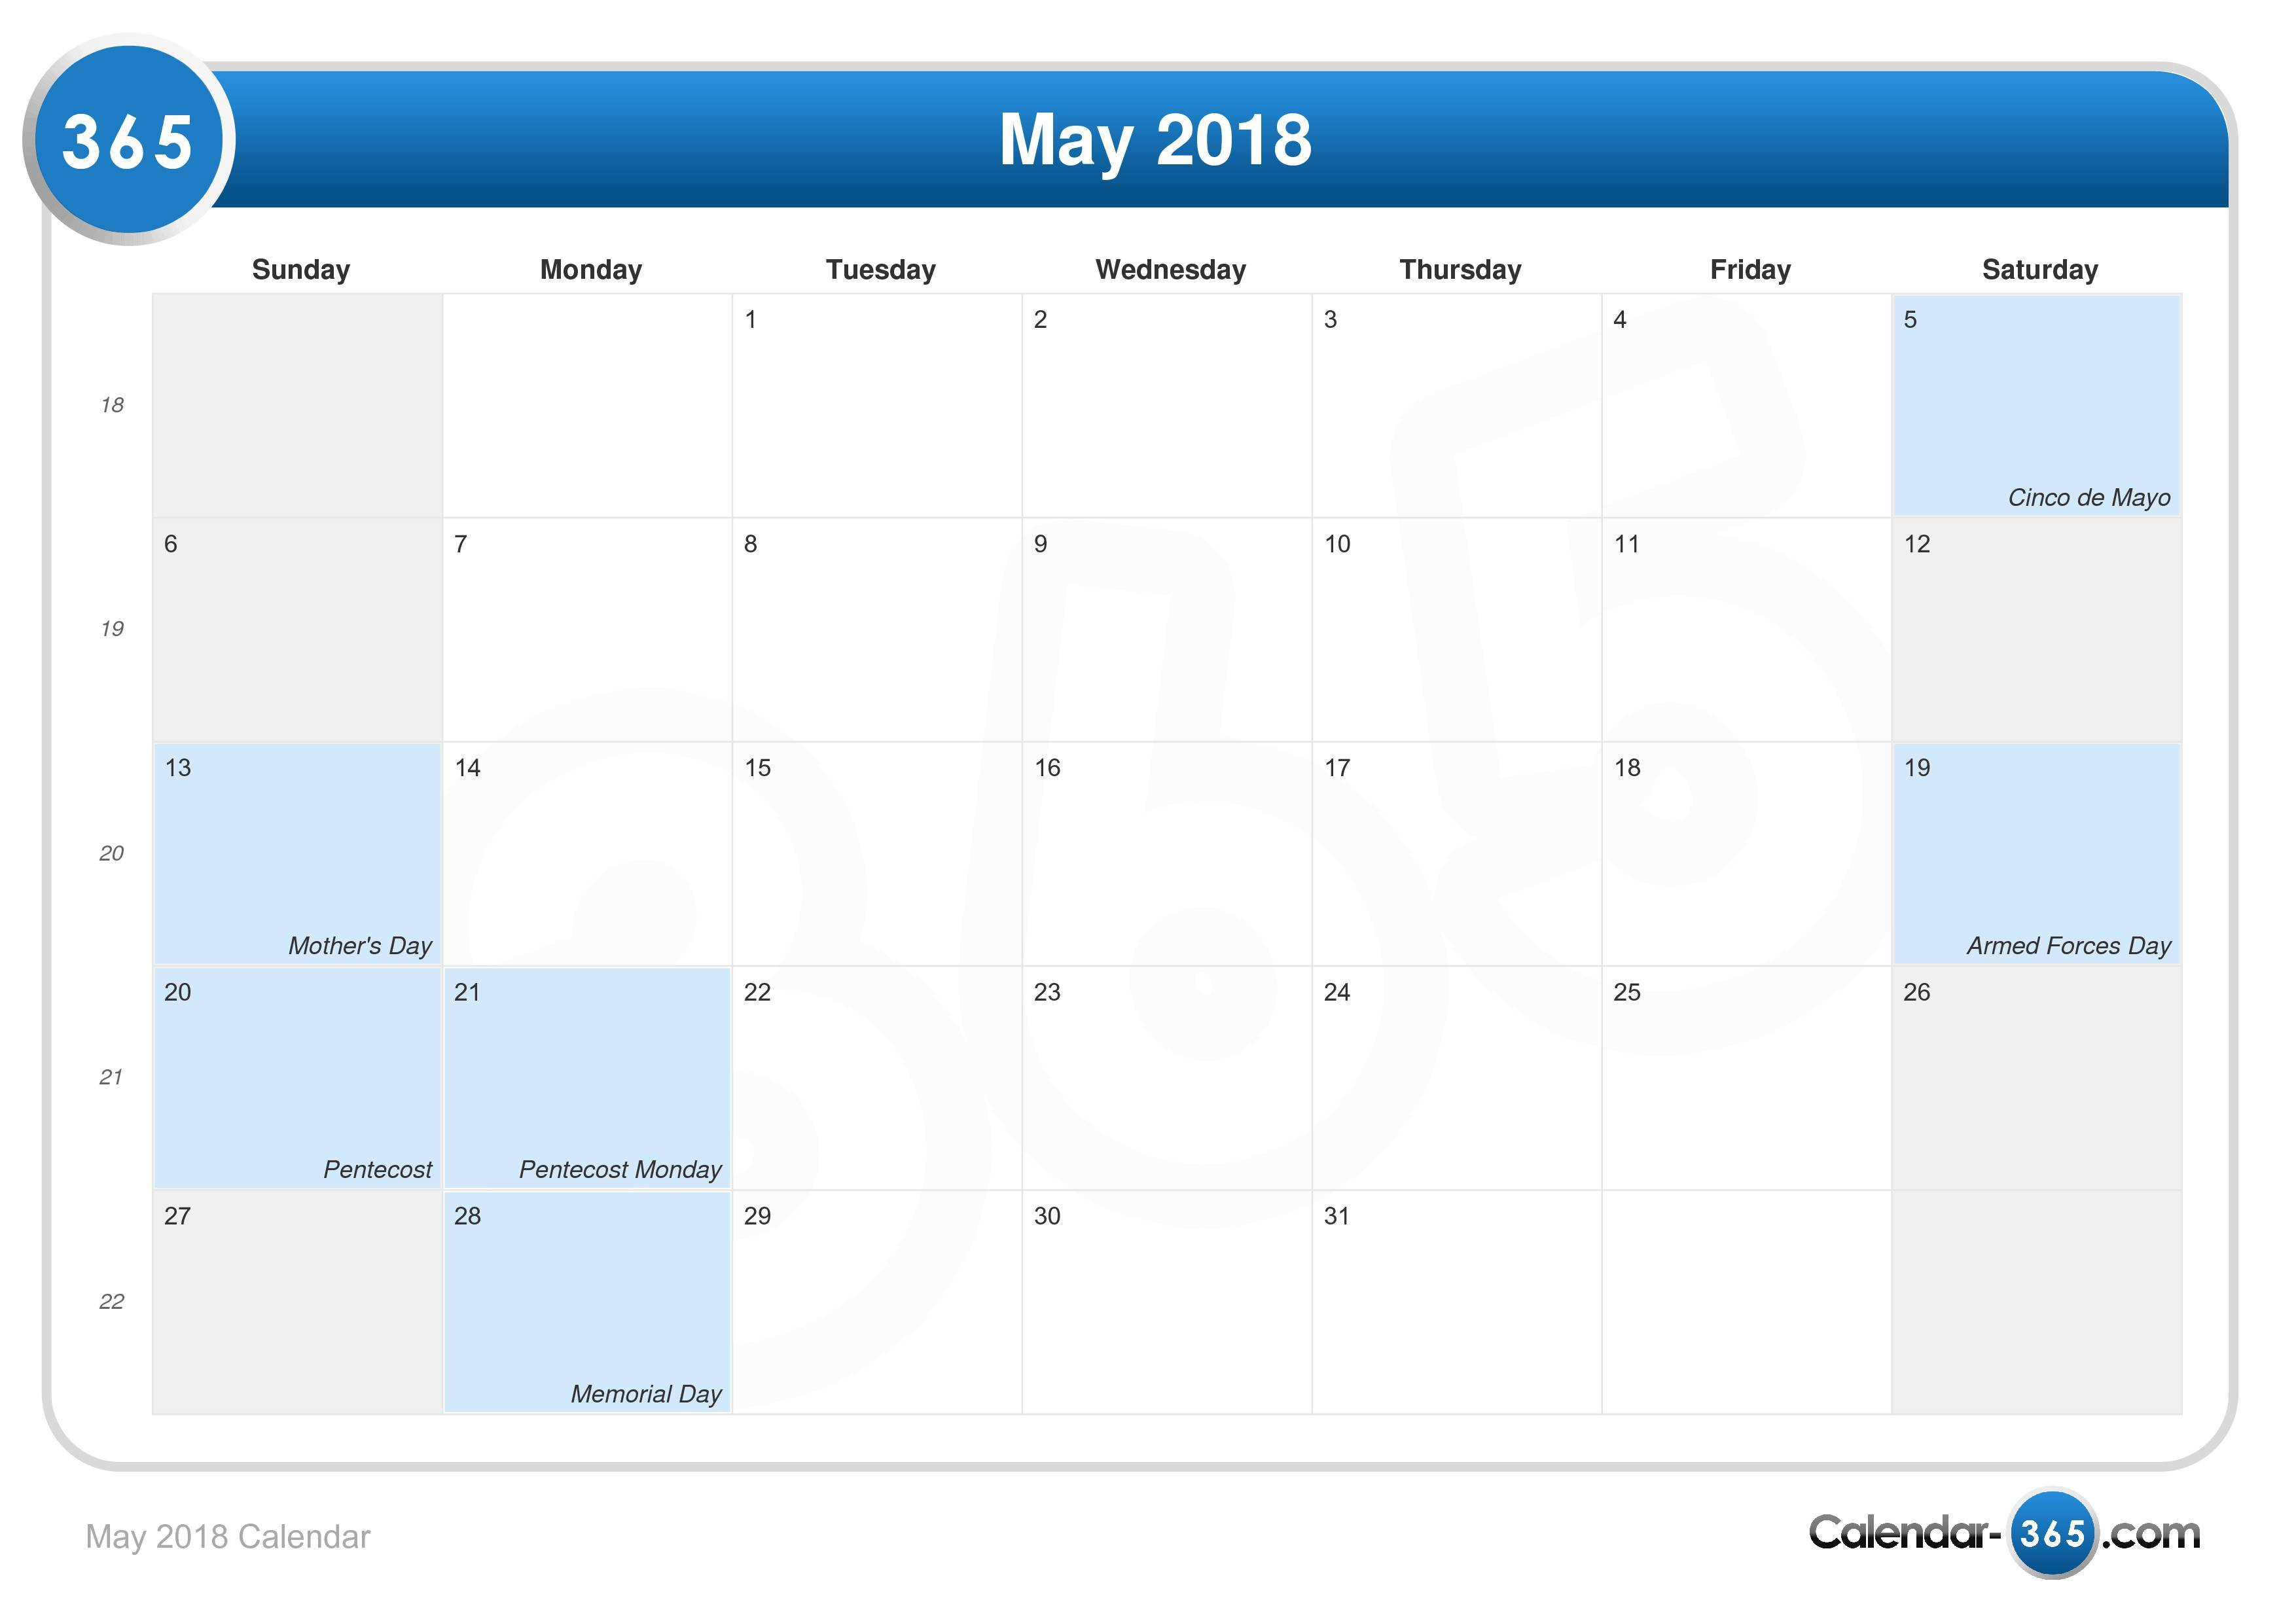 May Calendar Special Days : May calendar holidays special days mothers day